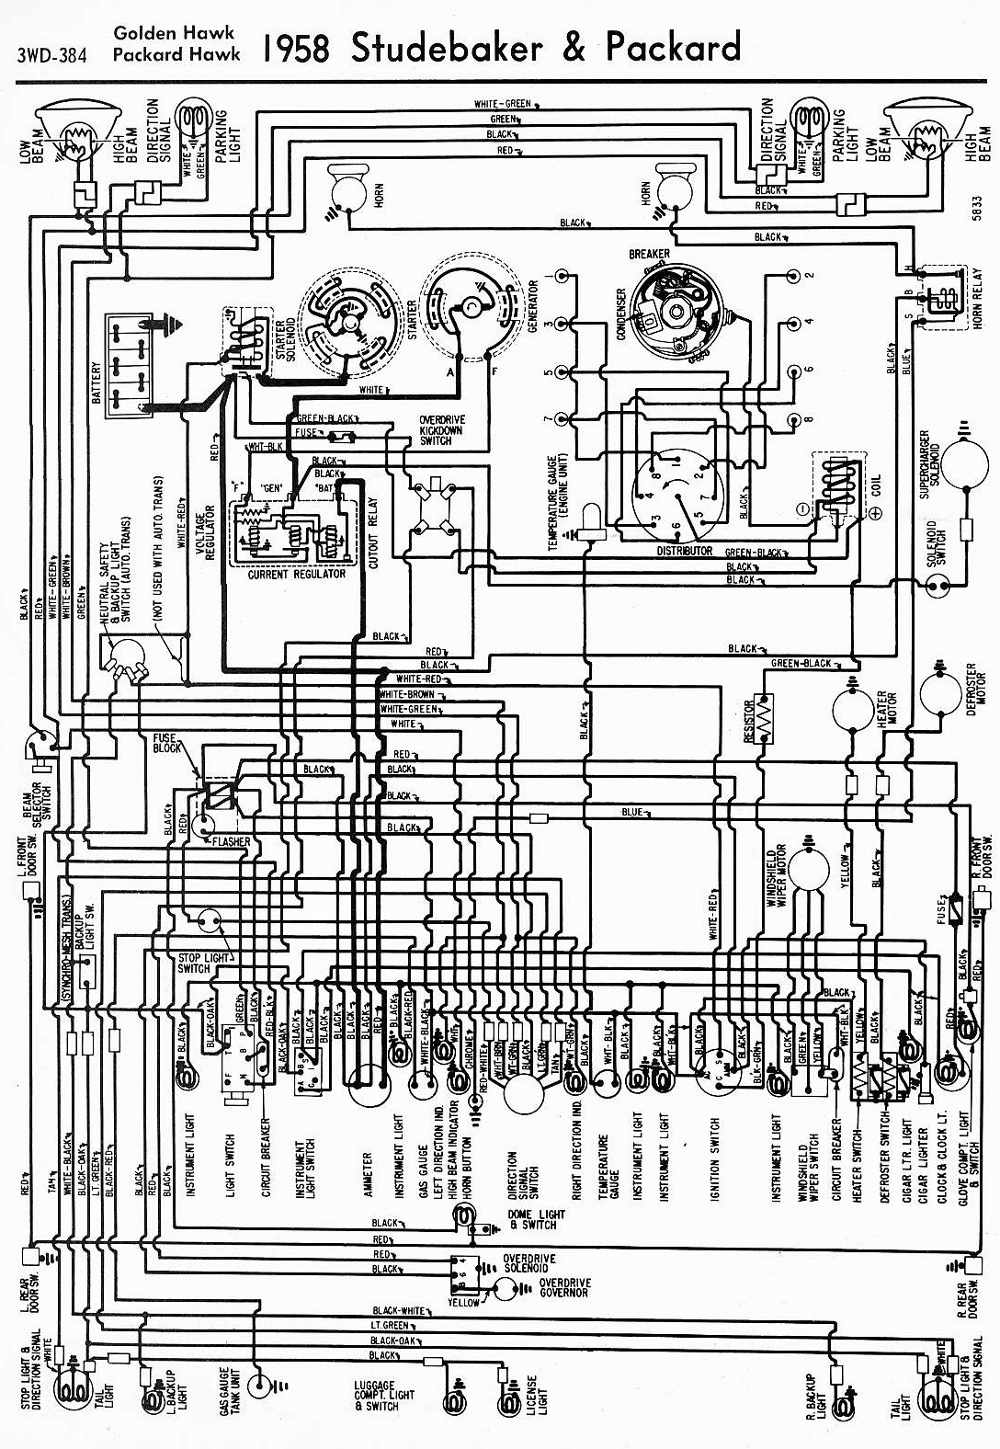 small resolution of 1949 packard wiring diagram schematic diagrams 8730w hp laptop parts diagram wiring schematic for hp computers